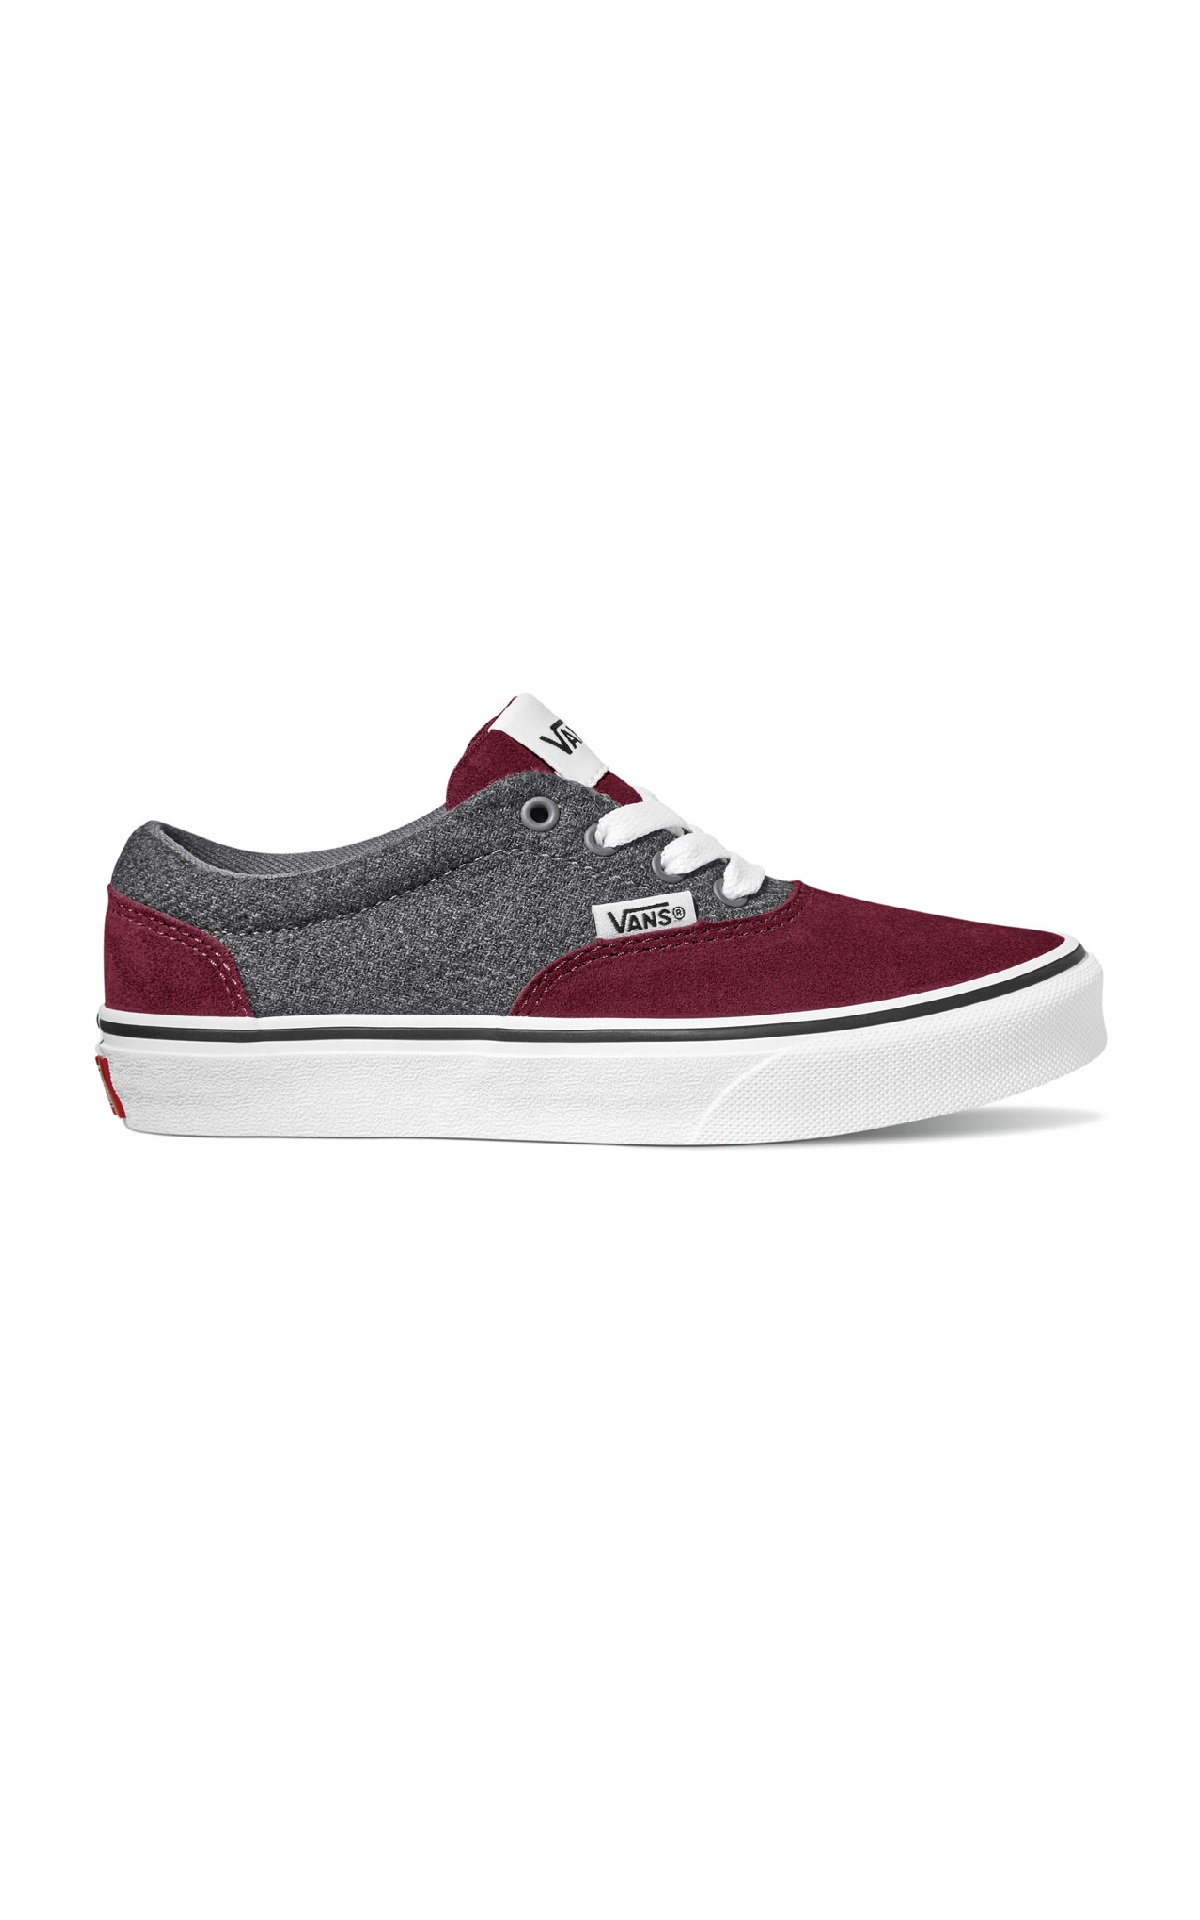 Grey and red sneakers Vans